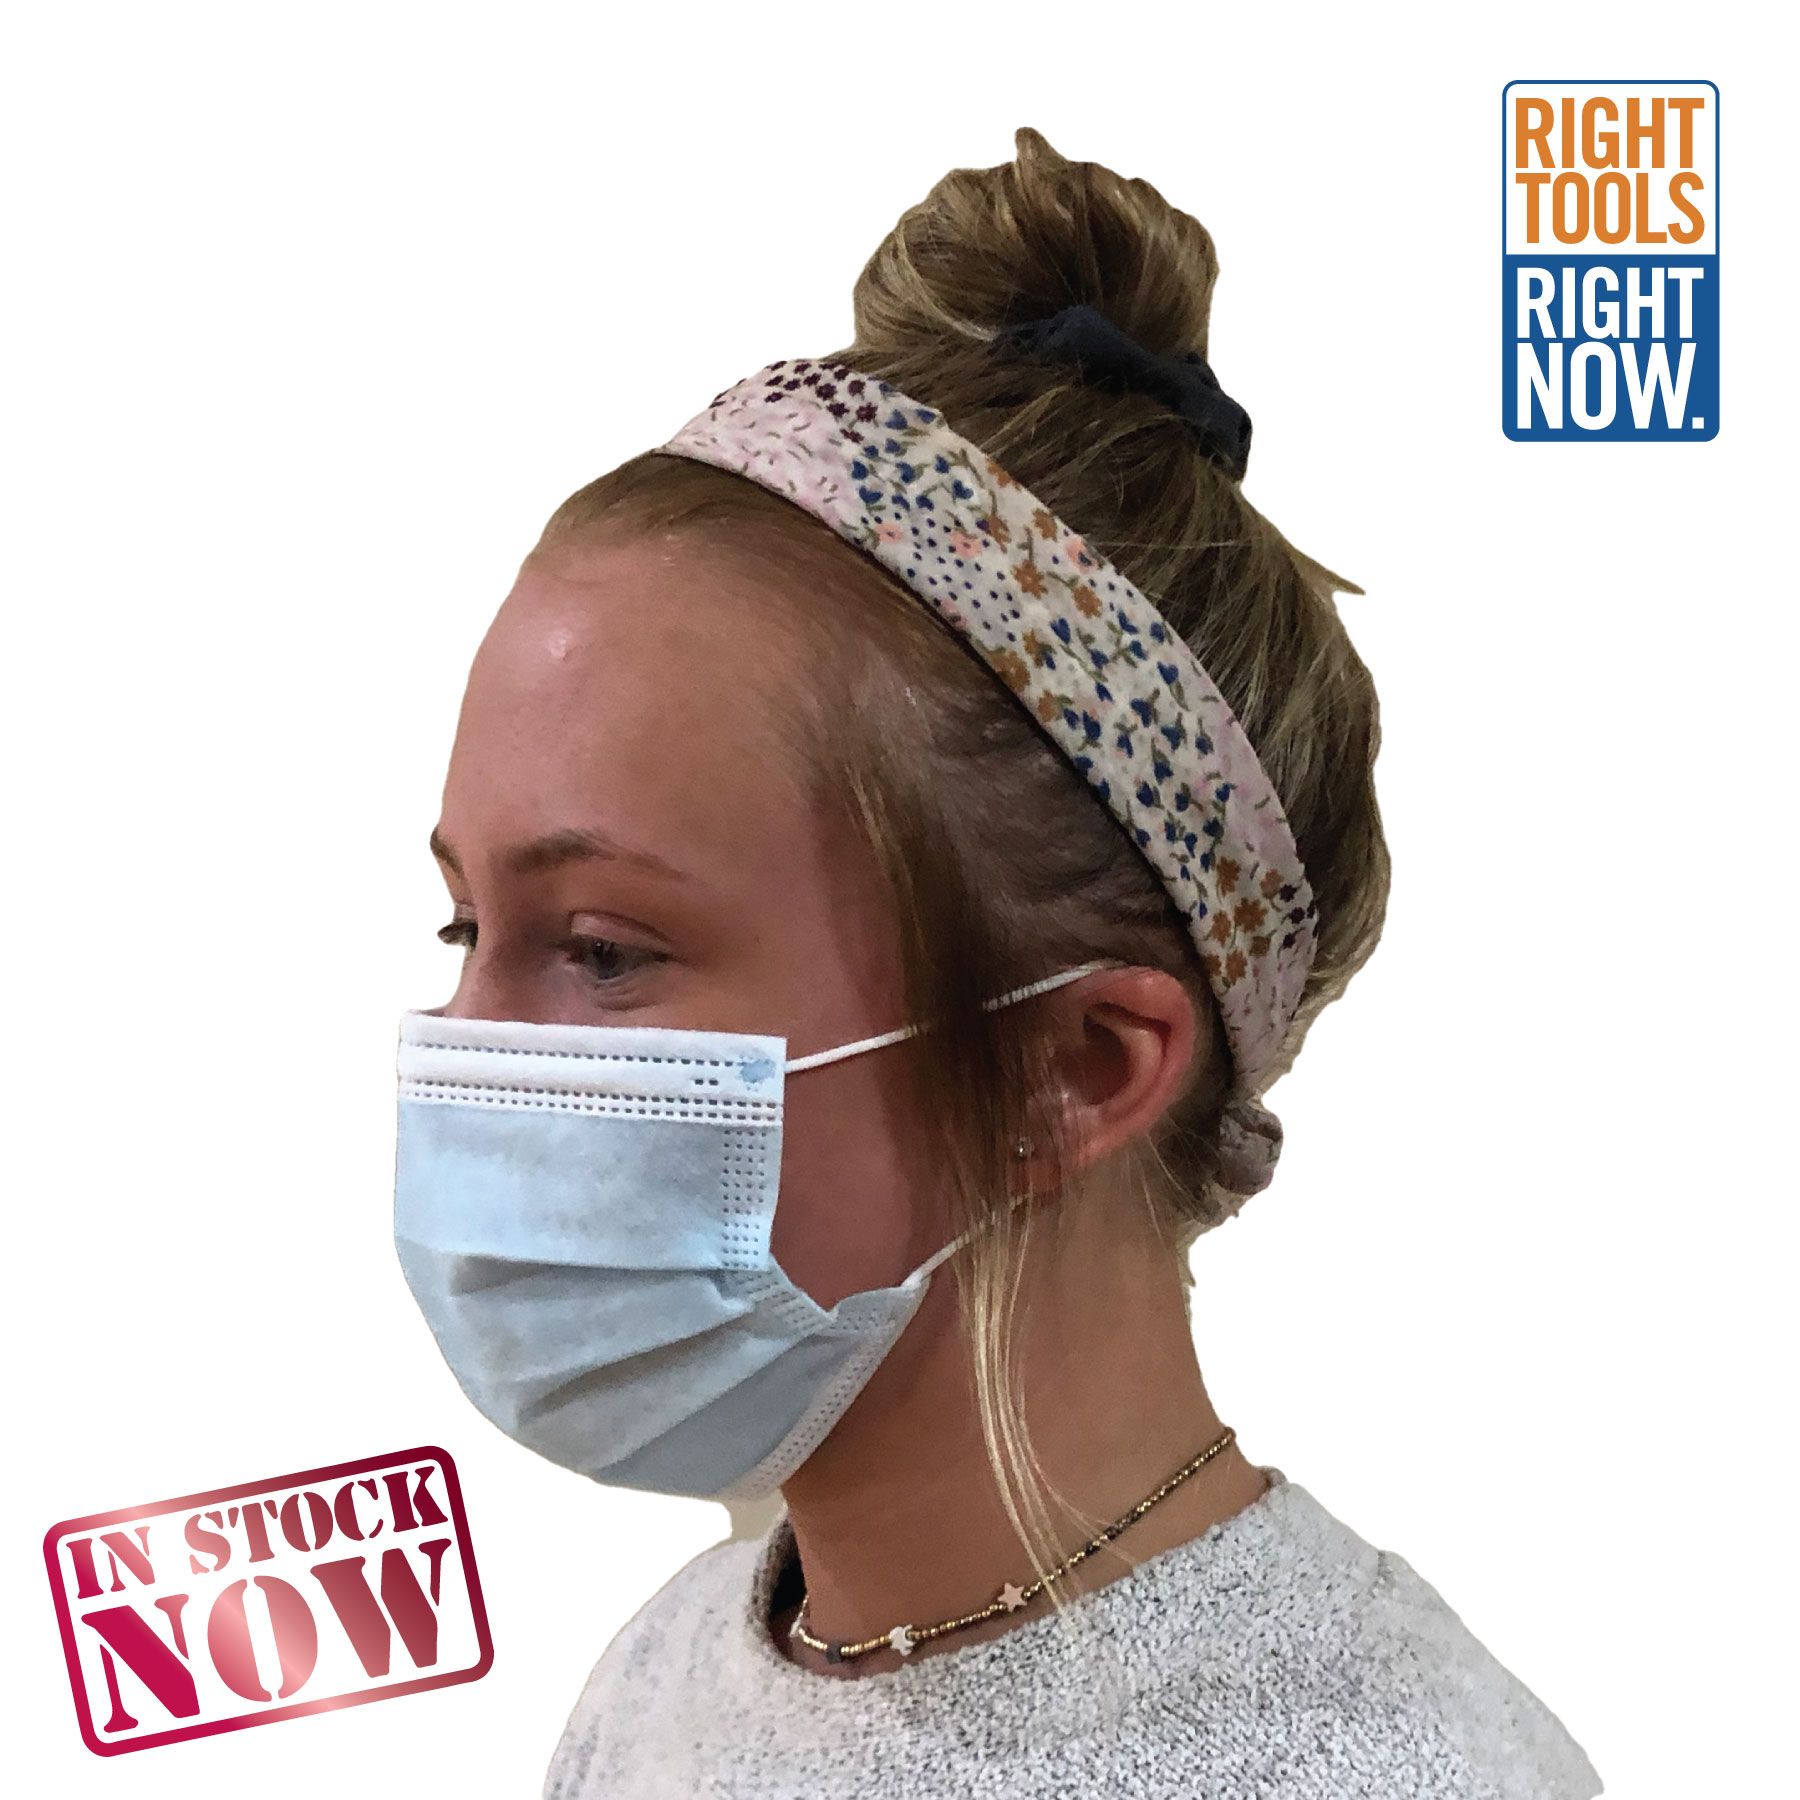 In Stock: Disposable 3-Ply Mask - 50 Pack Faces,Masks,Shields,COVID,COVID-19,SARS,Virus,Viruses,Coughs,Safety